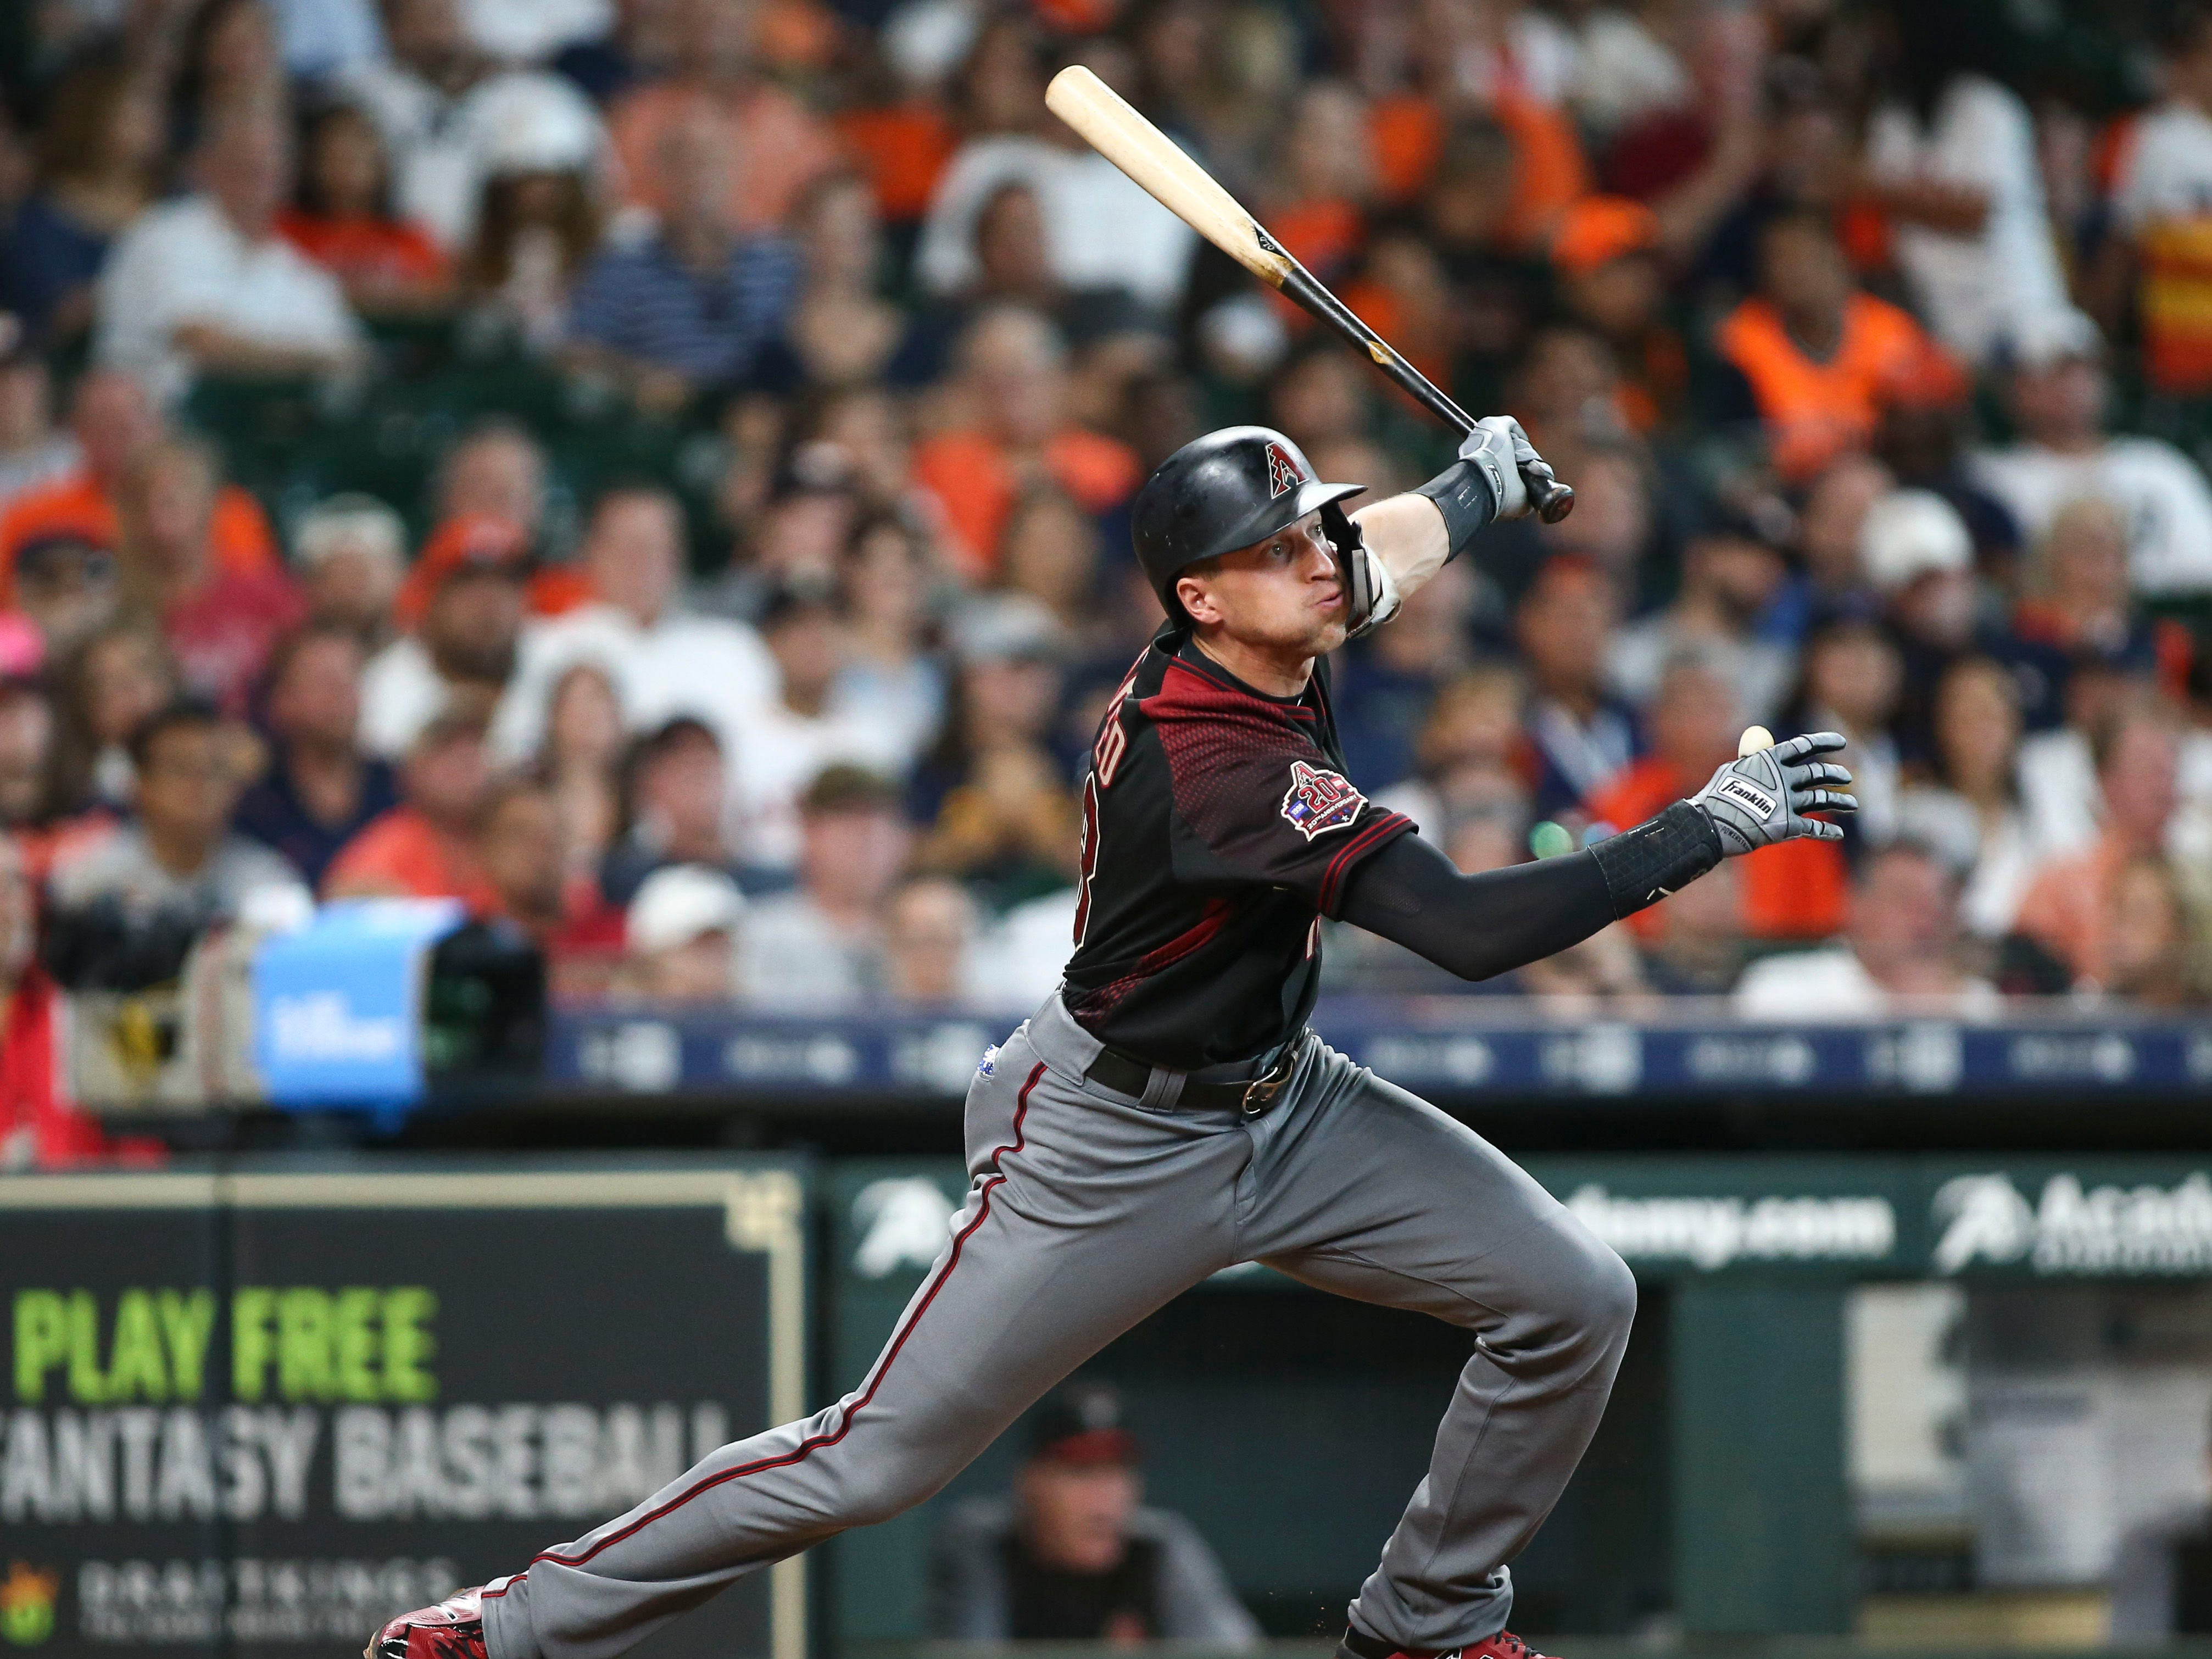 Sep 16, 2018; Houston, TX, USA; Arizona Diamondbacks shortstop Nick Ahmed (13) hits a single during the third inning against the Houston Astros at Minute Maid Park. Mandatory Credit: Troy Taormina-USA TODAY Sports